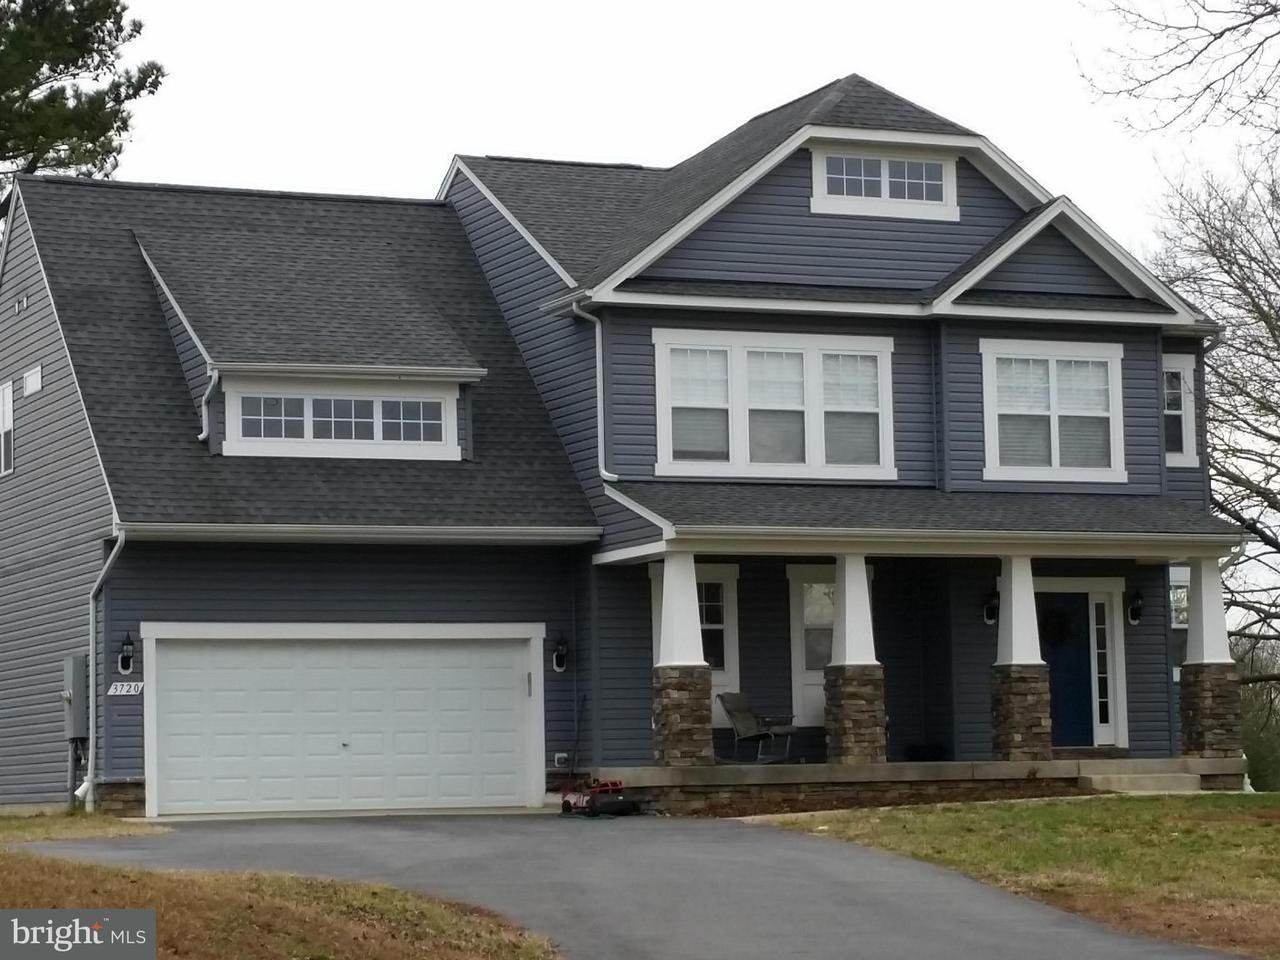 Single Family for Sale at 11822 Wollaston Cir Issue, Maryland 20645 United States